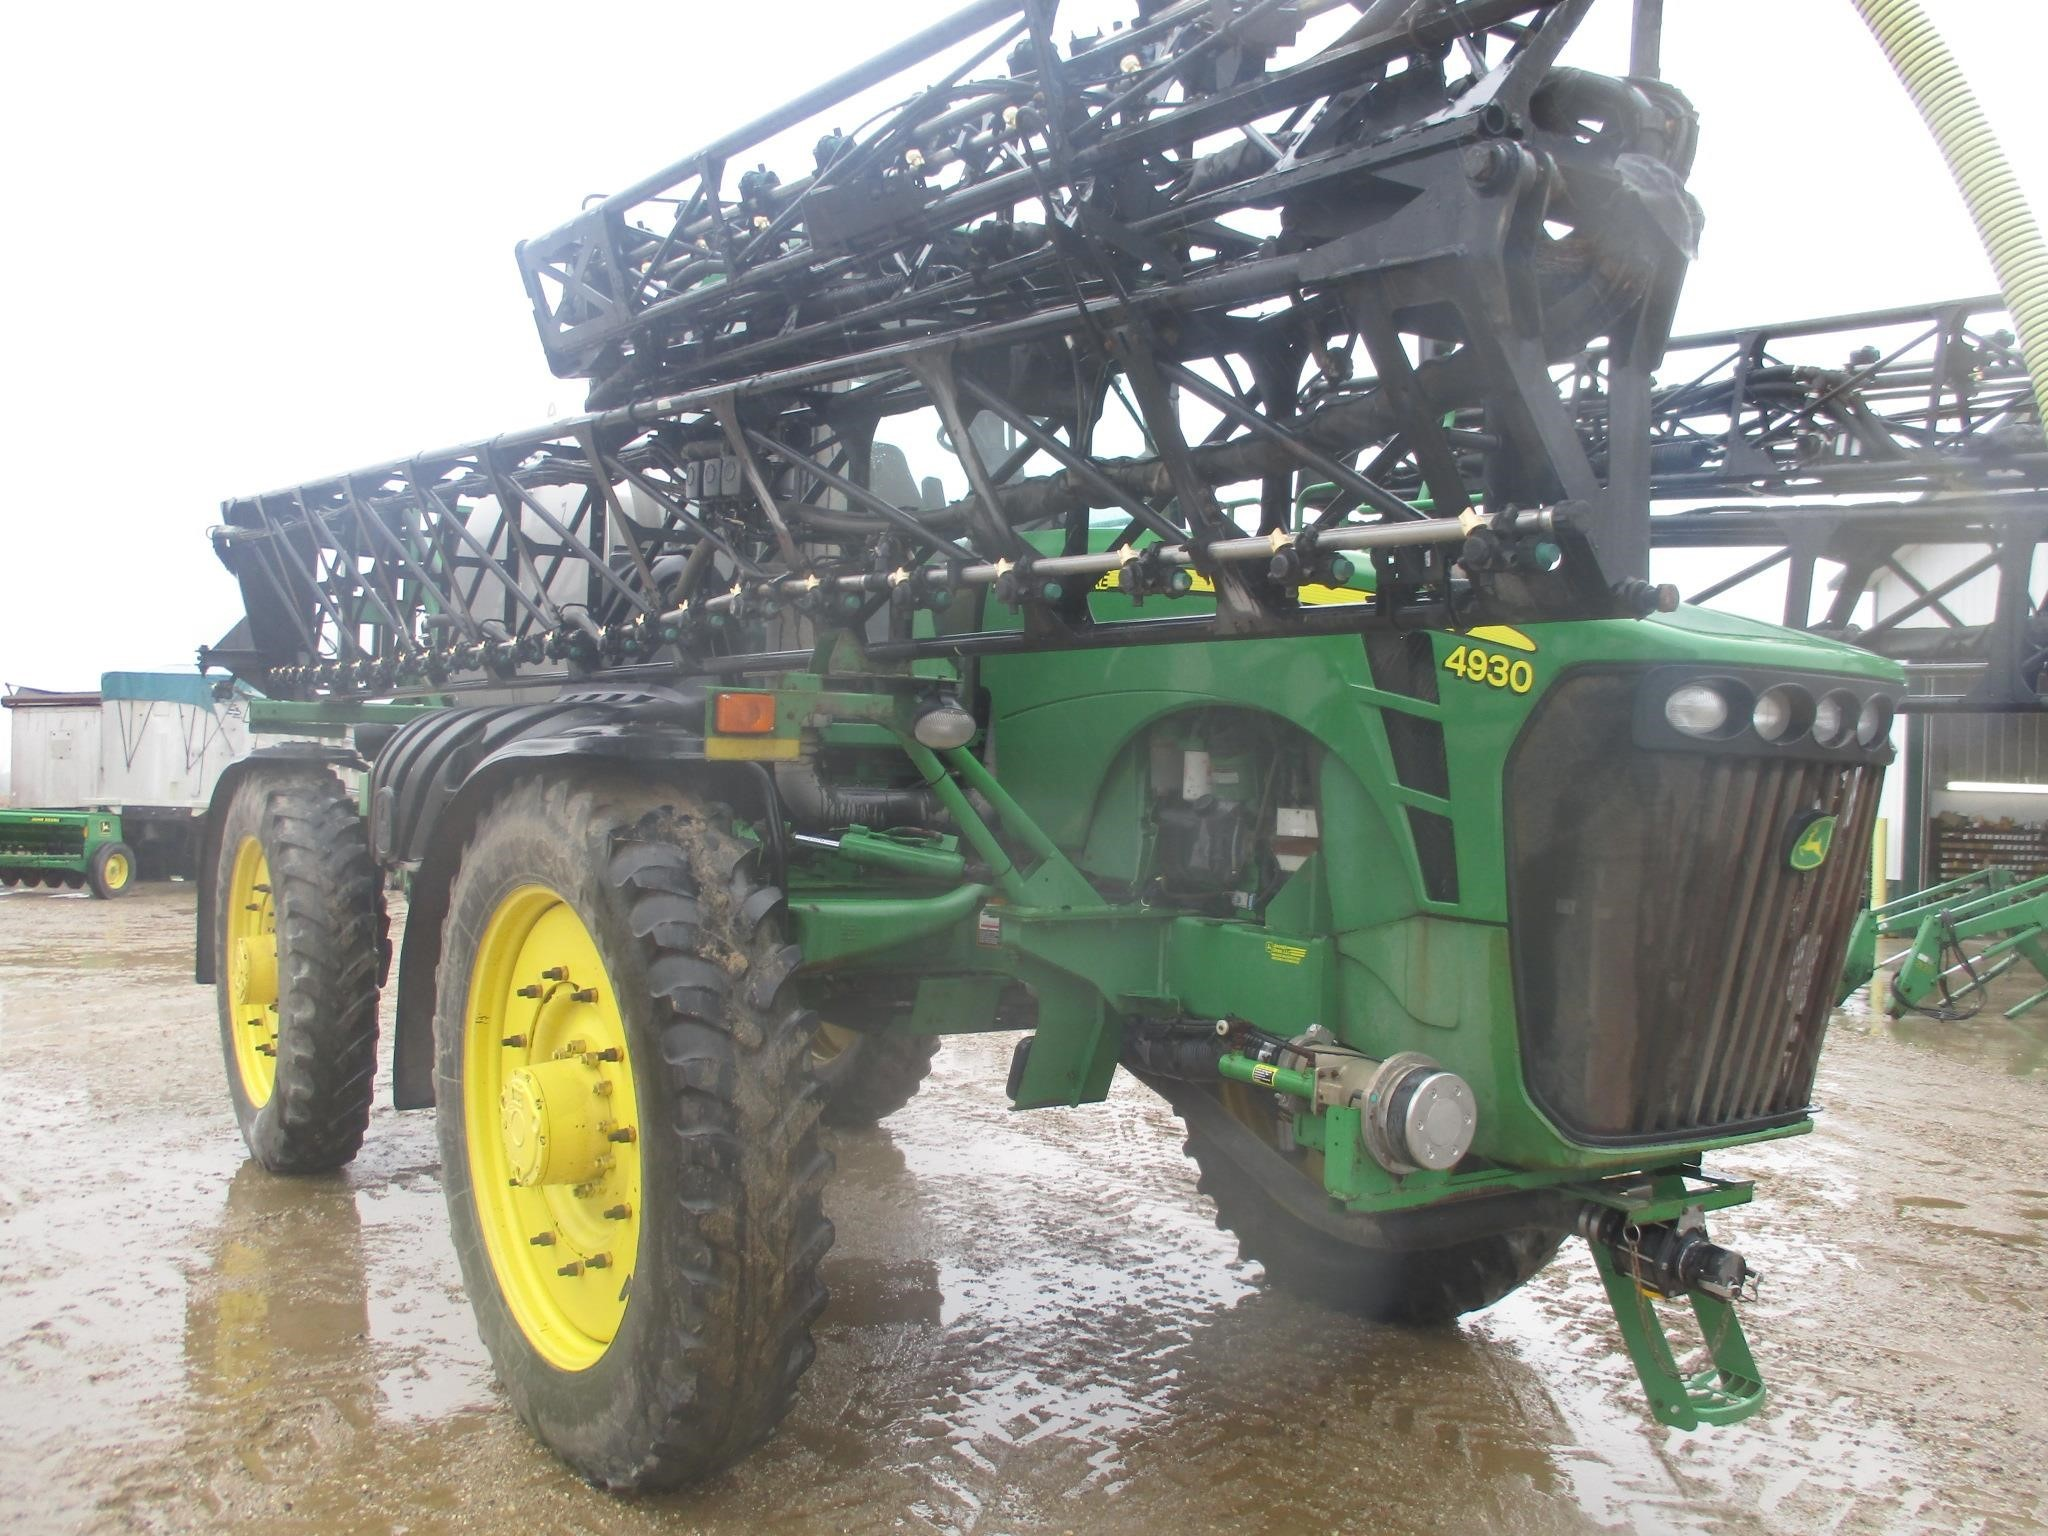 2009 John Deere 4930 Self-Propelled Sprayer